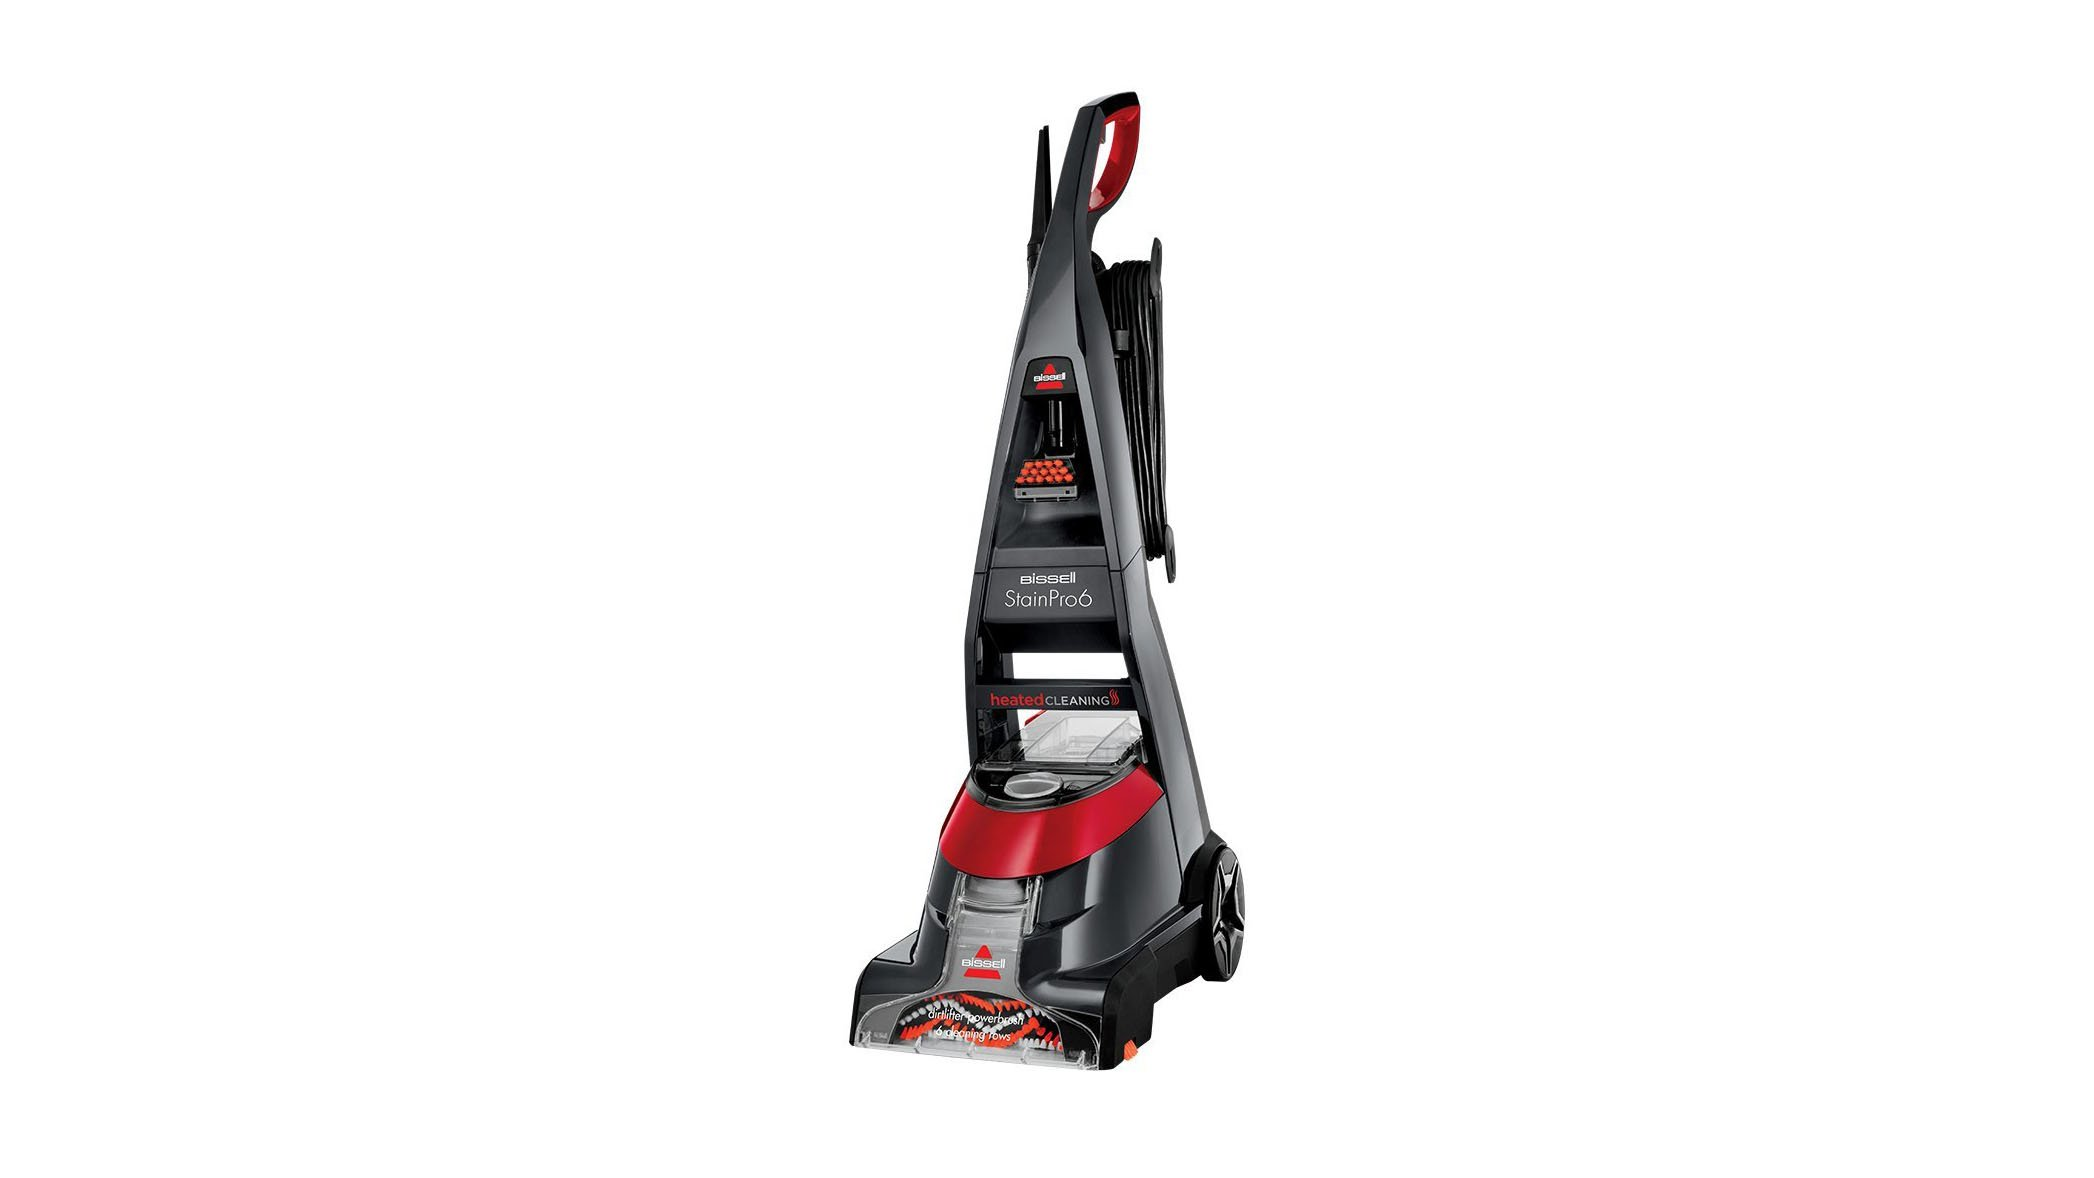 The StainPro 6 is ideally suited to households with two or three carpeted rooms. Despite its cumbersome dimensions, it's an excellent performer and pretty ...